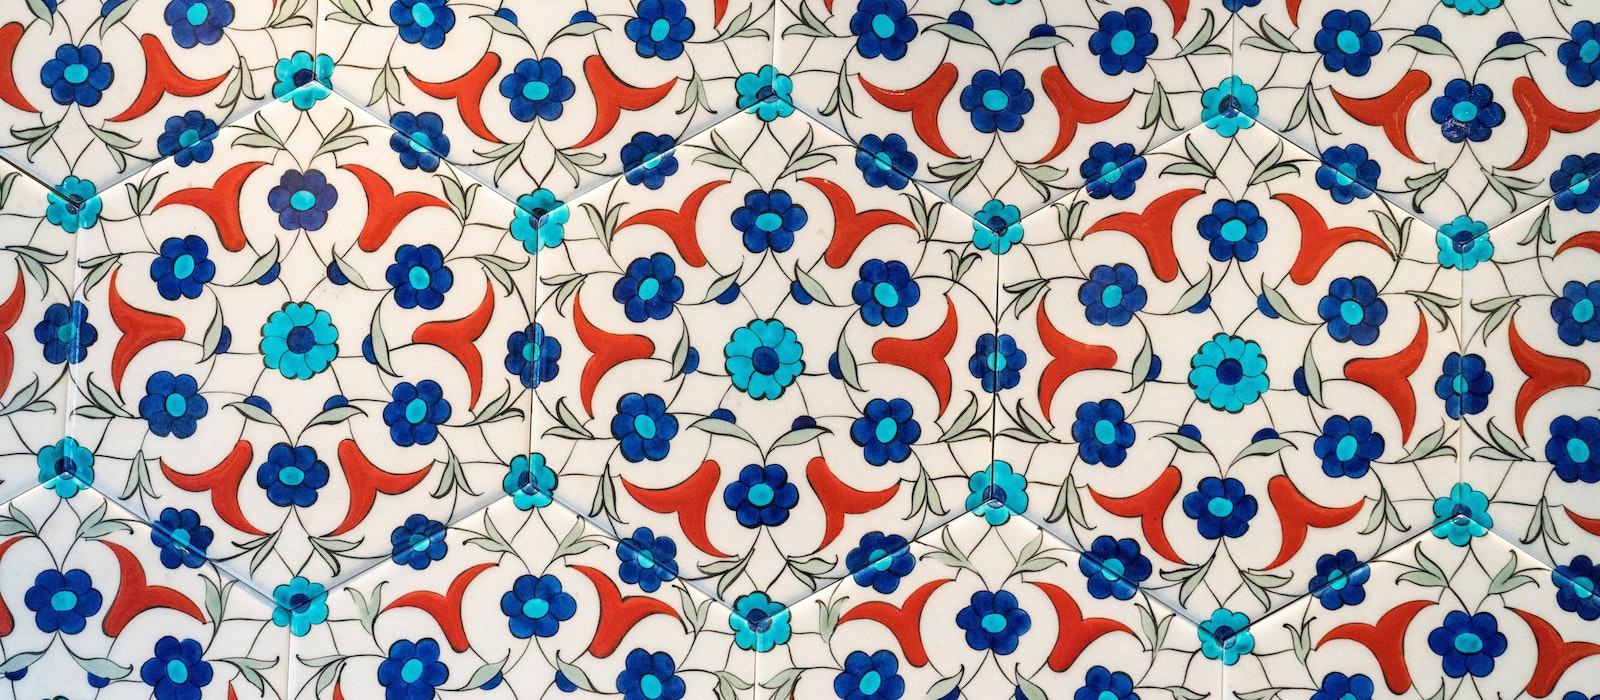 Original iznik 20tiles 20panel 20at 20iznik 20classics.jpg?ixlib=rails 0.3